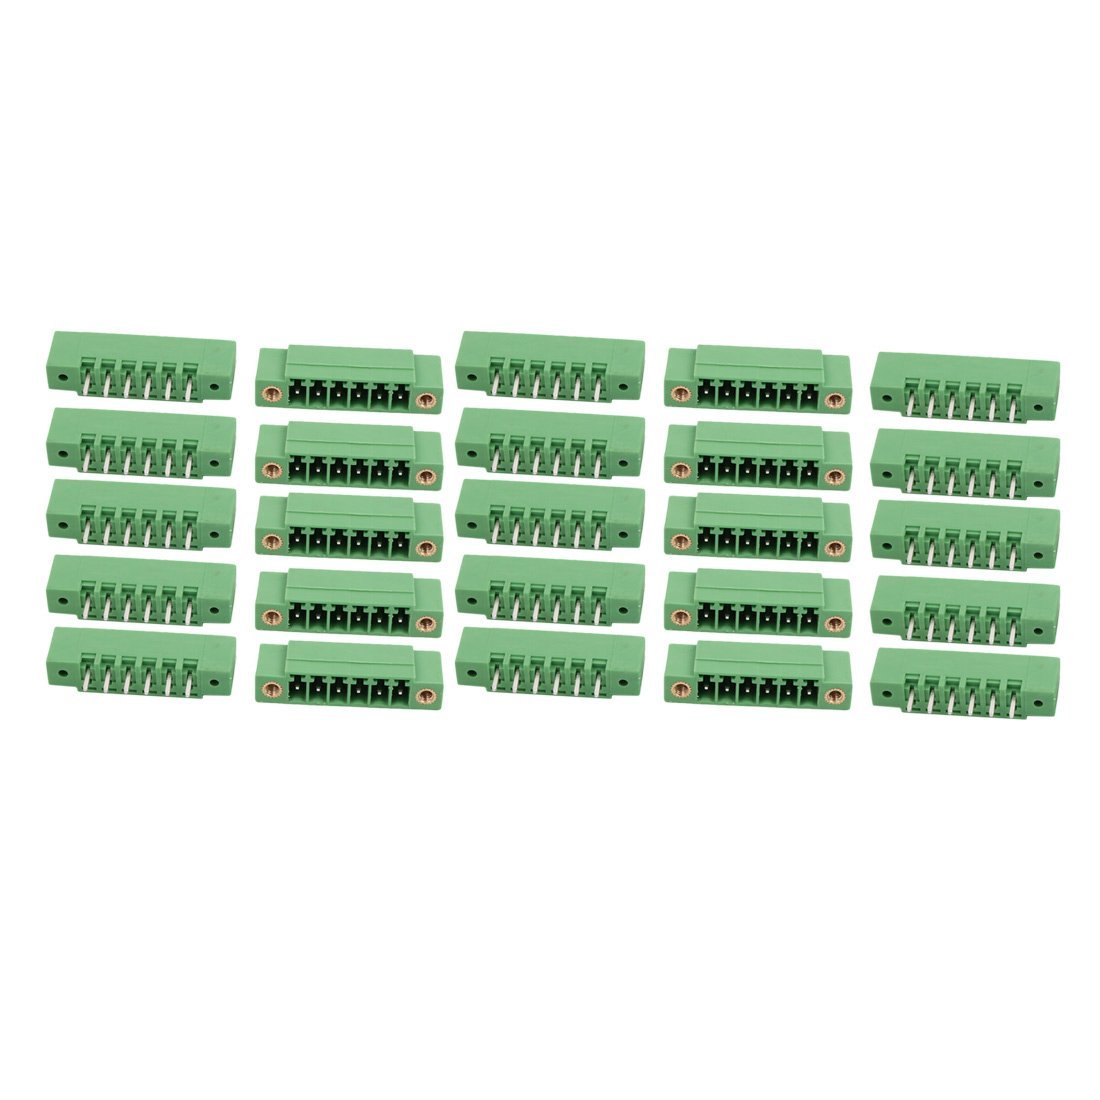 uxcell 25Pcs AC 300V 8A 3.5mm Pitch 6P Terminal Block Wire Connection for PCB Mounting